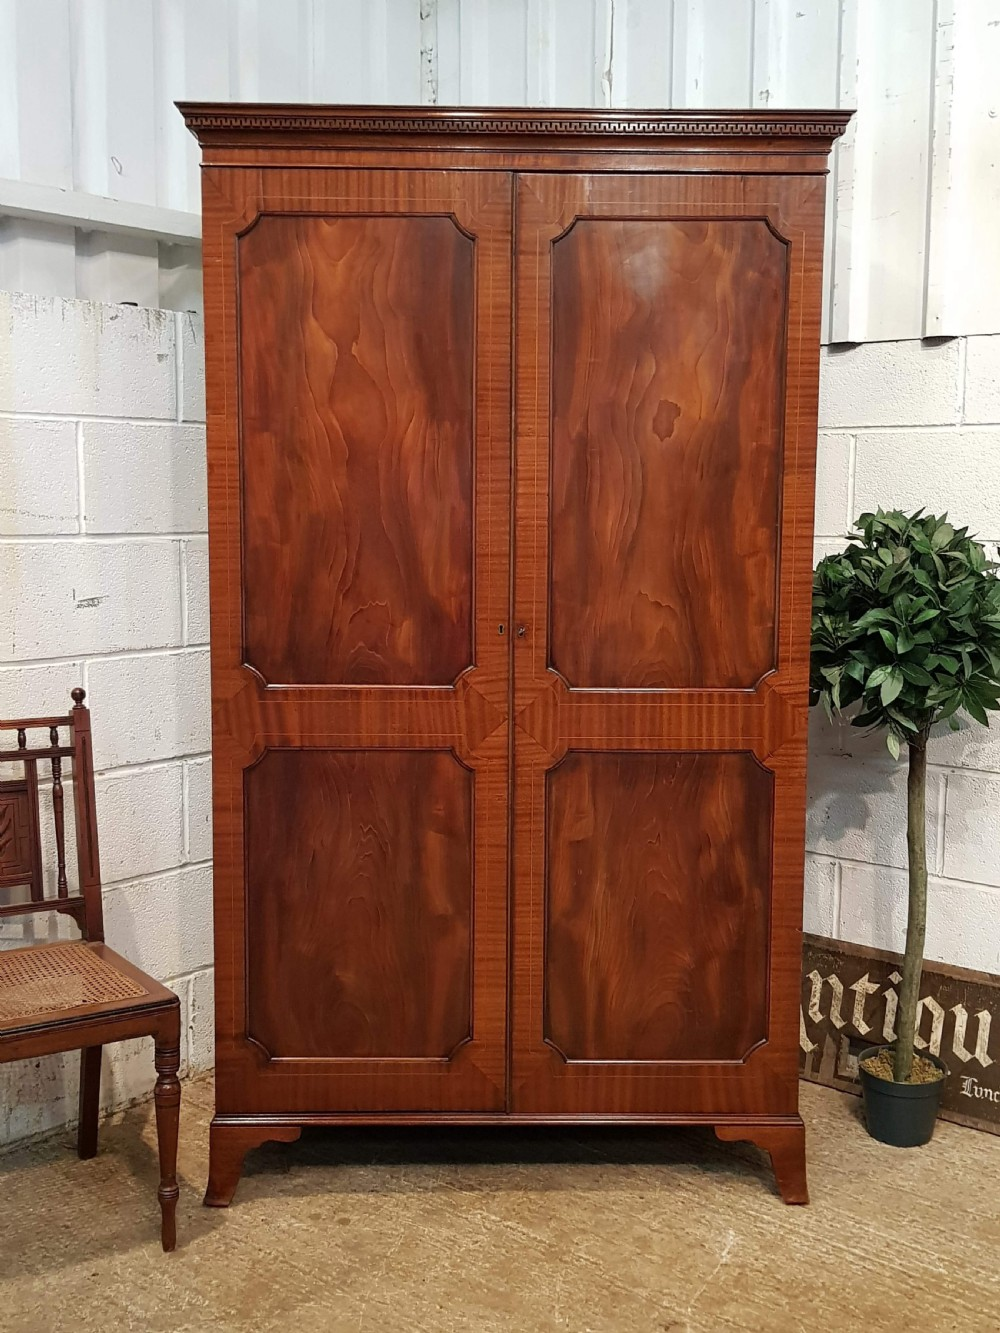 antique edwardian regency mahogany double wardrobe c1900